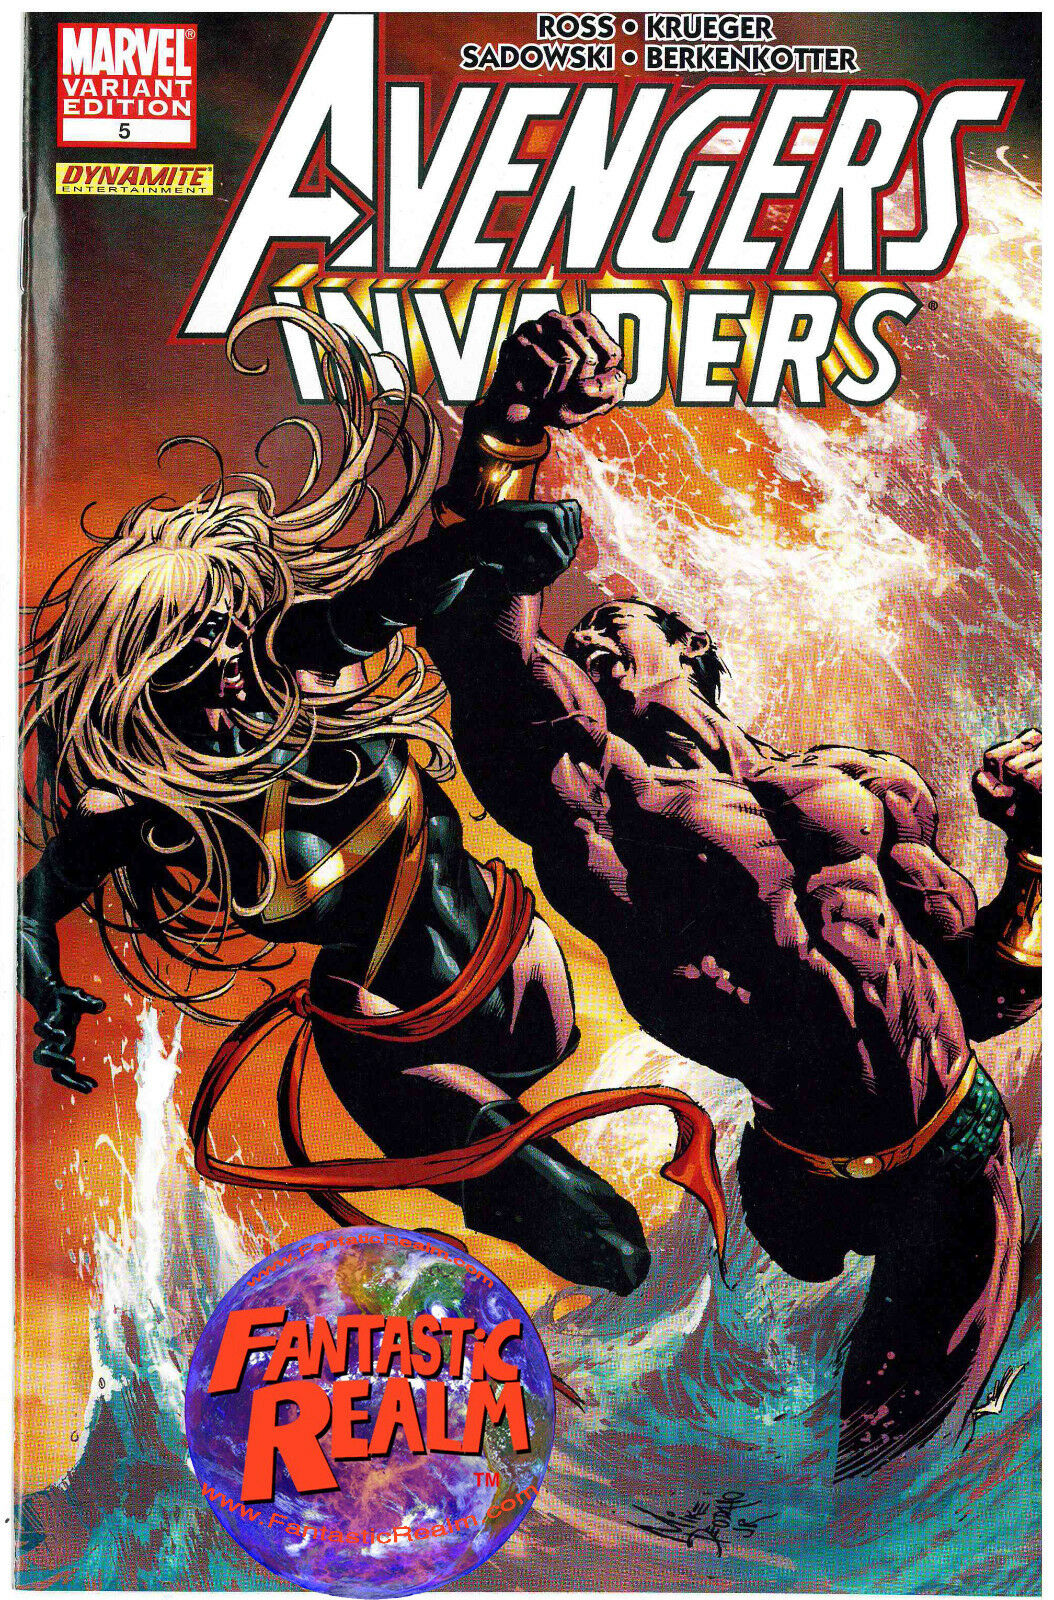 AVENGERS INVADERS #5 1ST PRINT MIKE DEODATO VARIANT MARVEL DYNAMITE COMICS